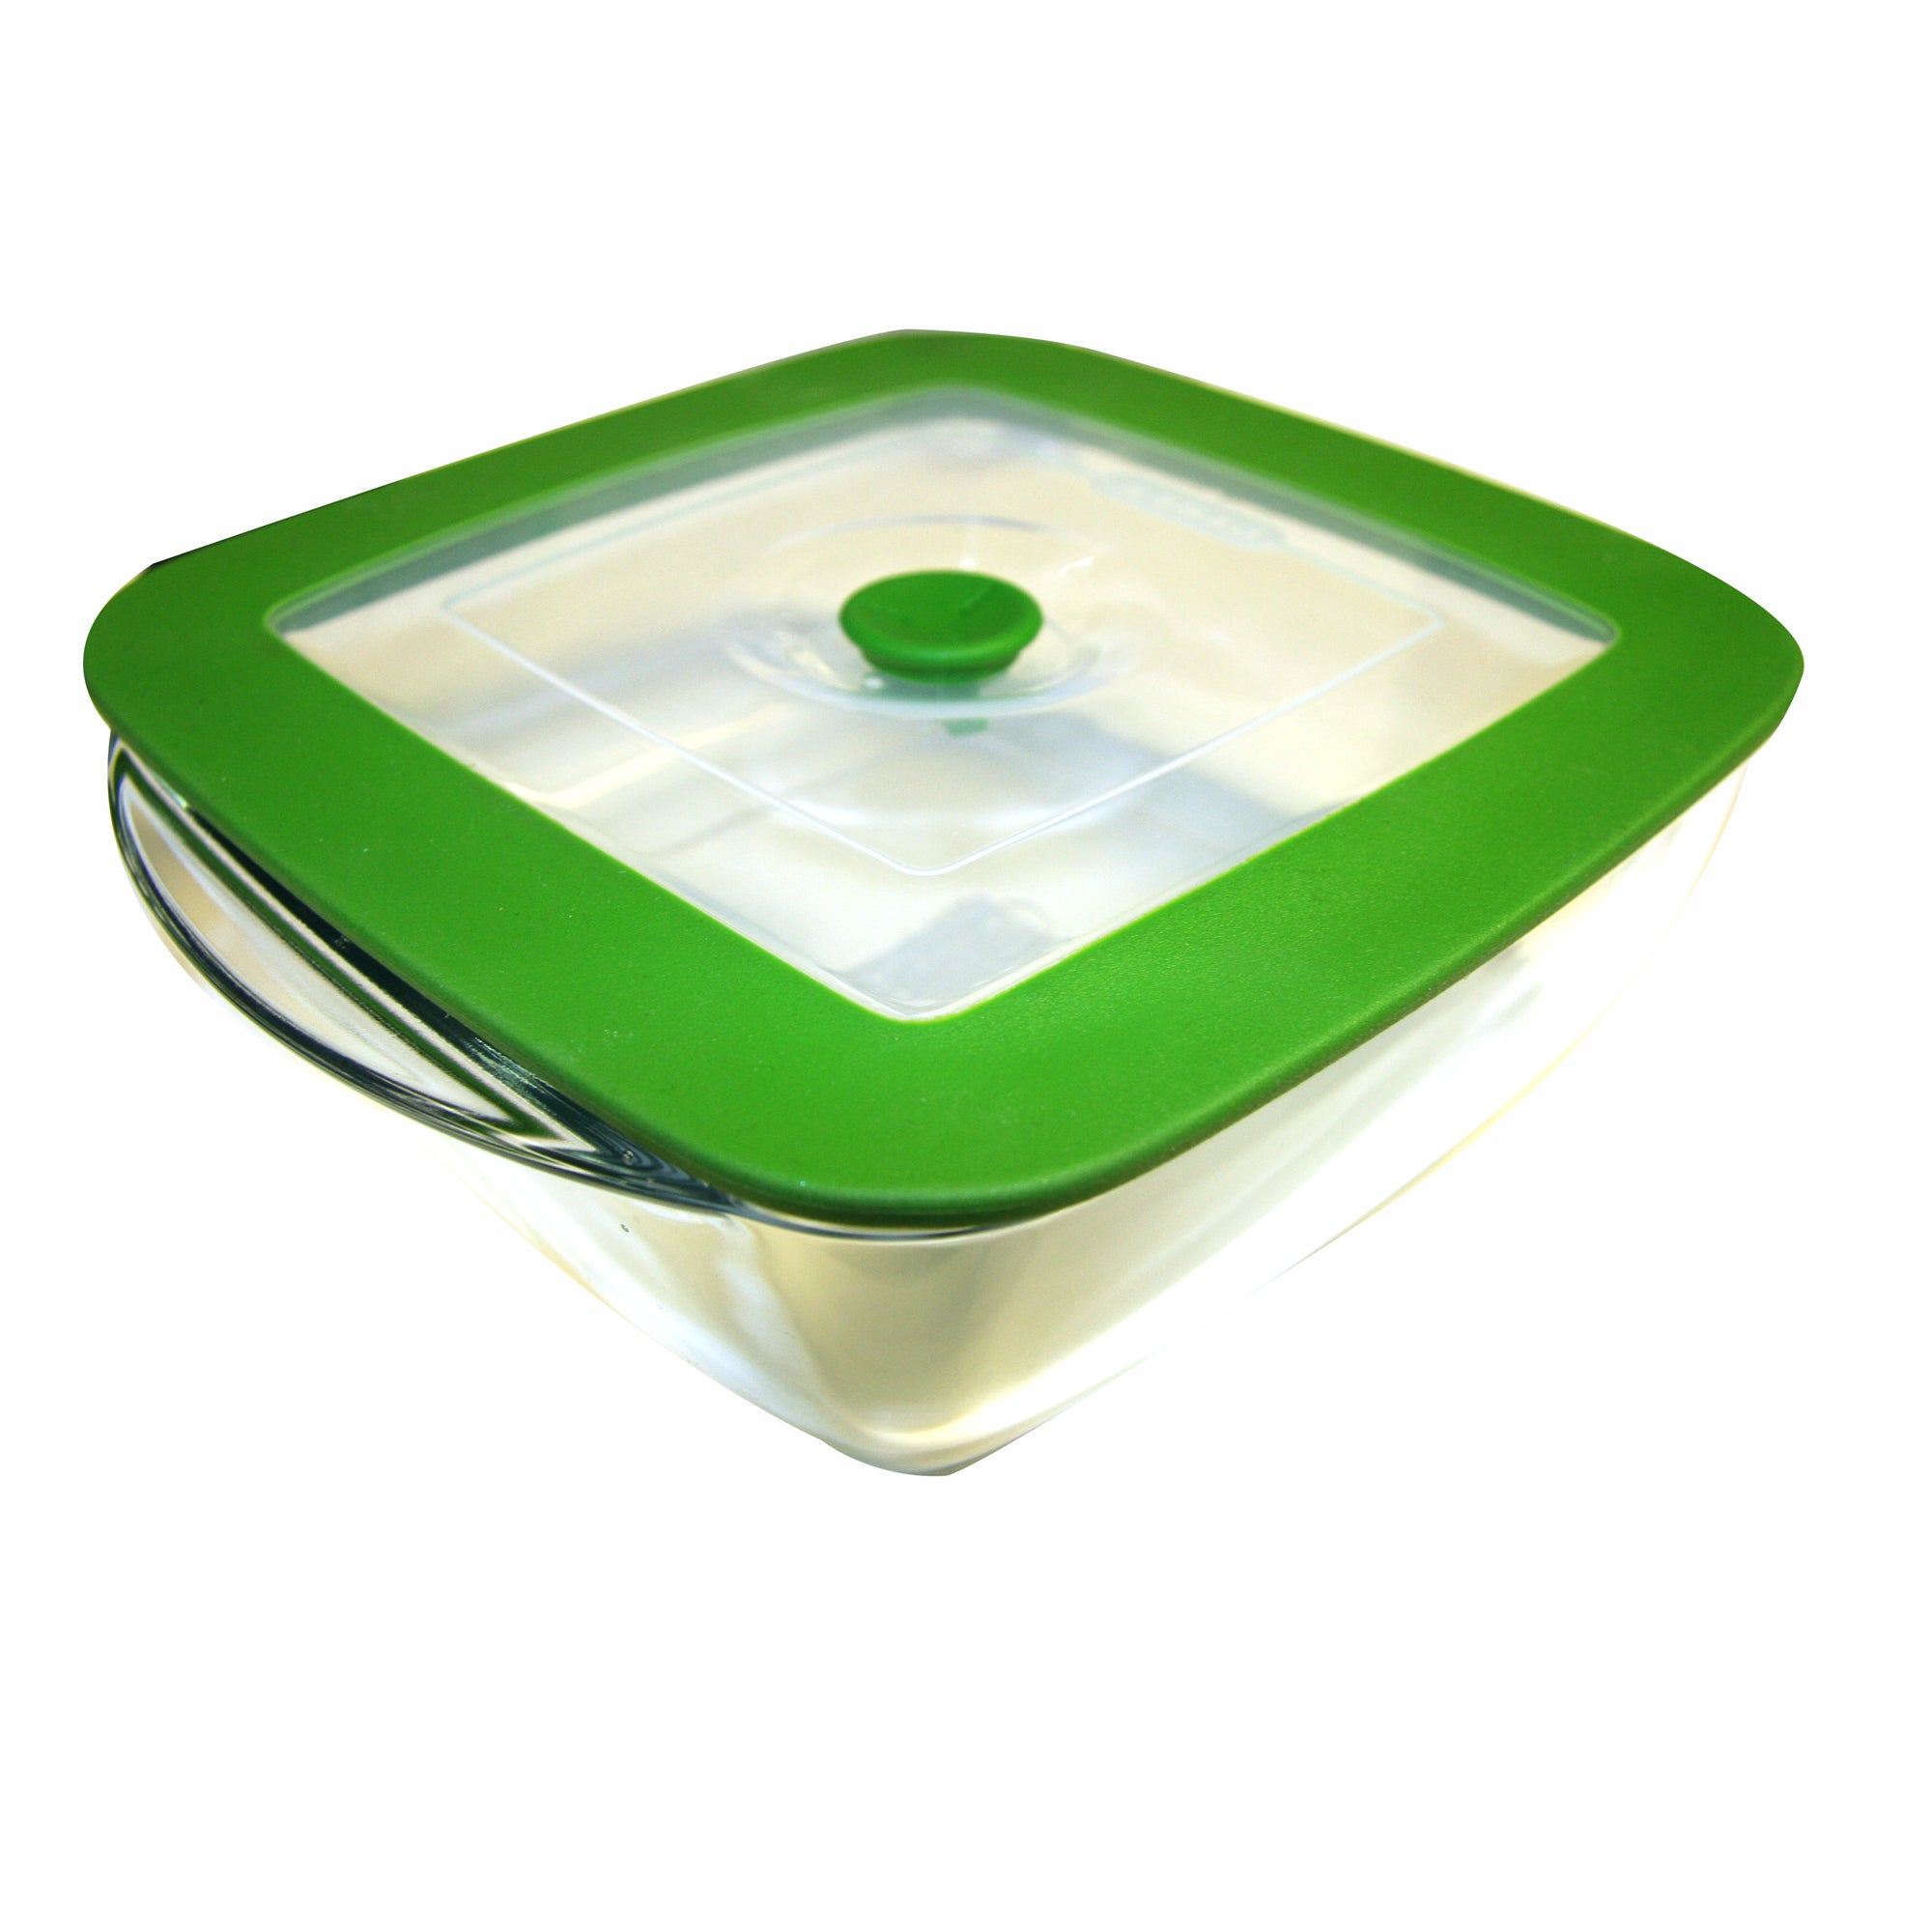 Pyrex 4 in 1 Square Dish